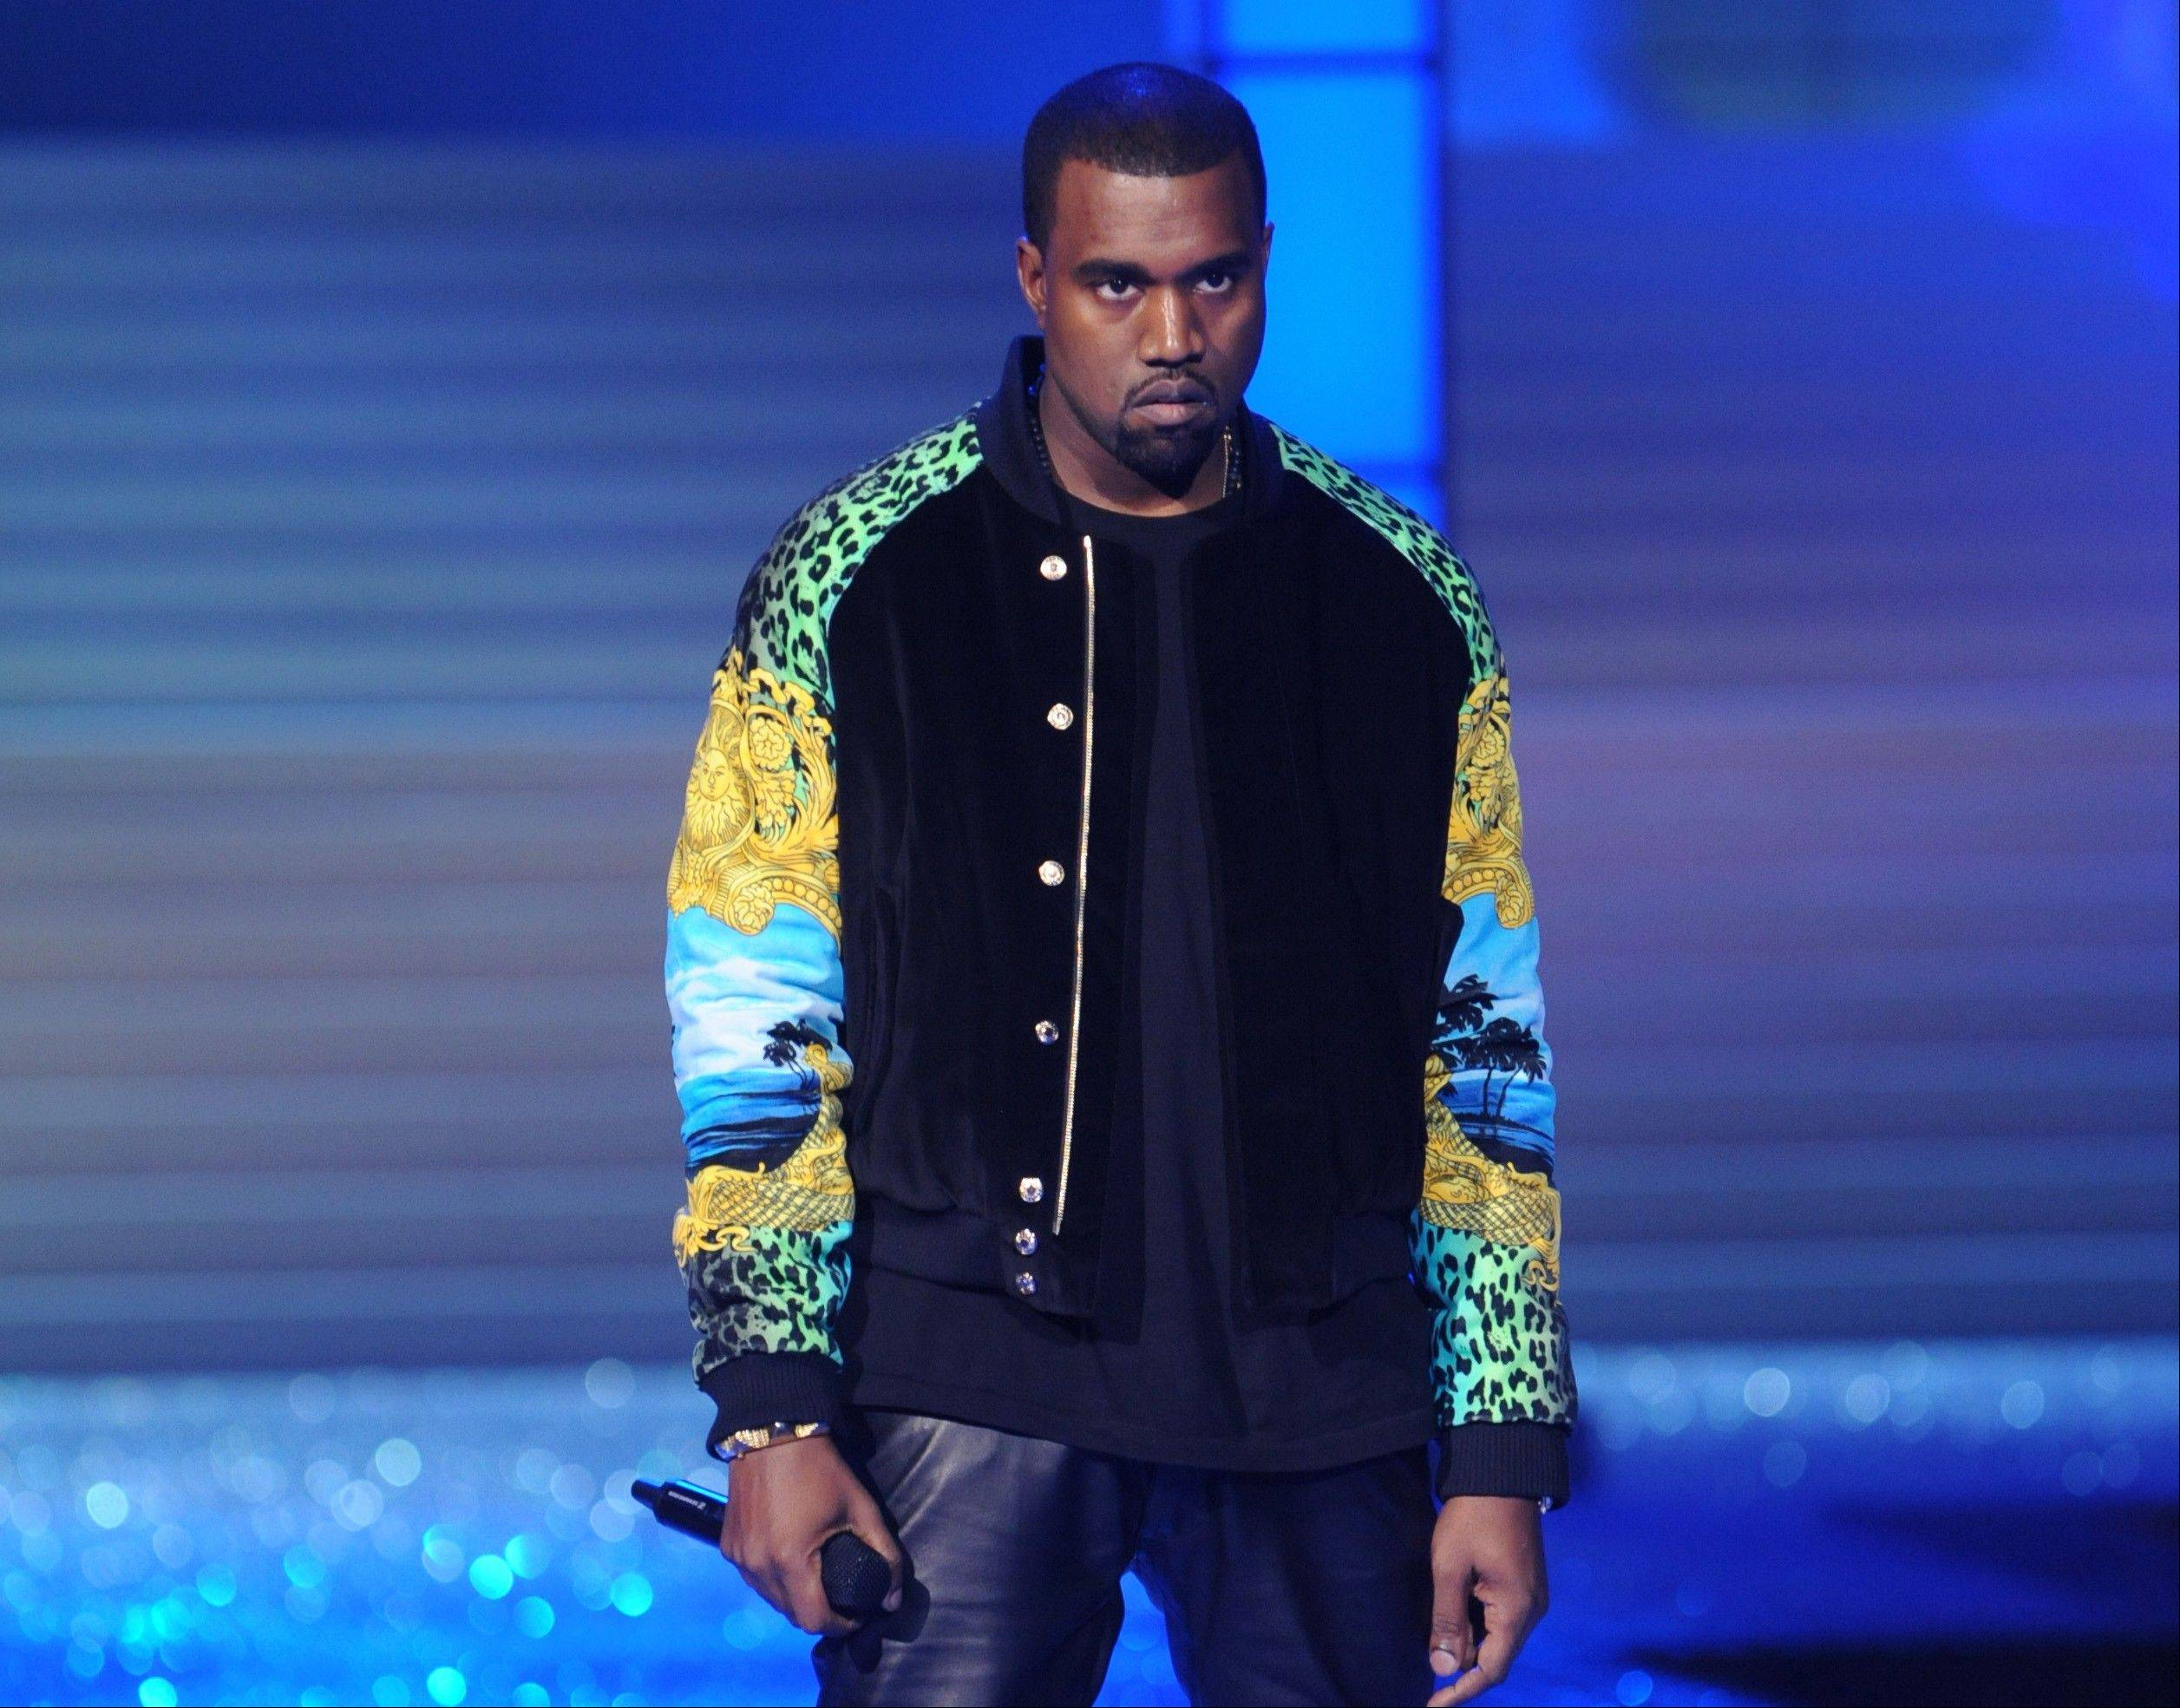 With 17 nominations, Kanye West is the leader at the BET Hip-Hop Awards, which will air on BET on Oct. 9.